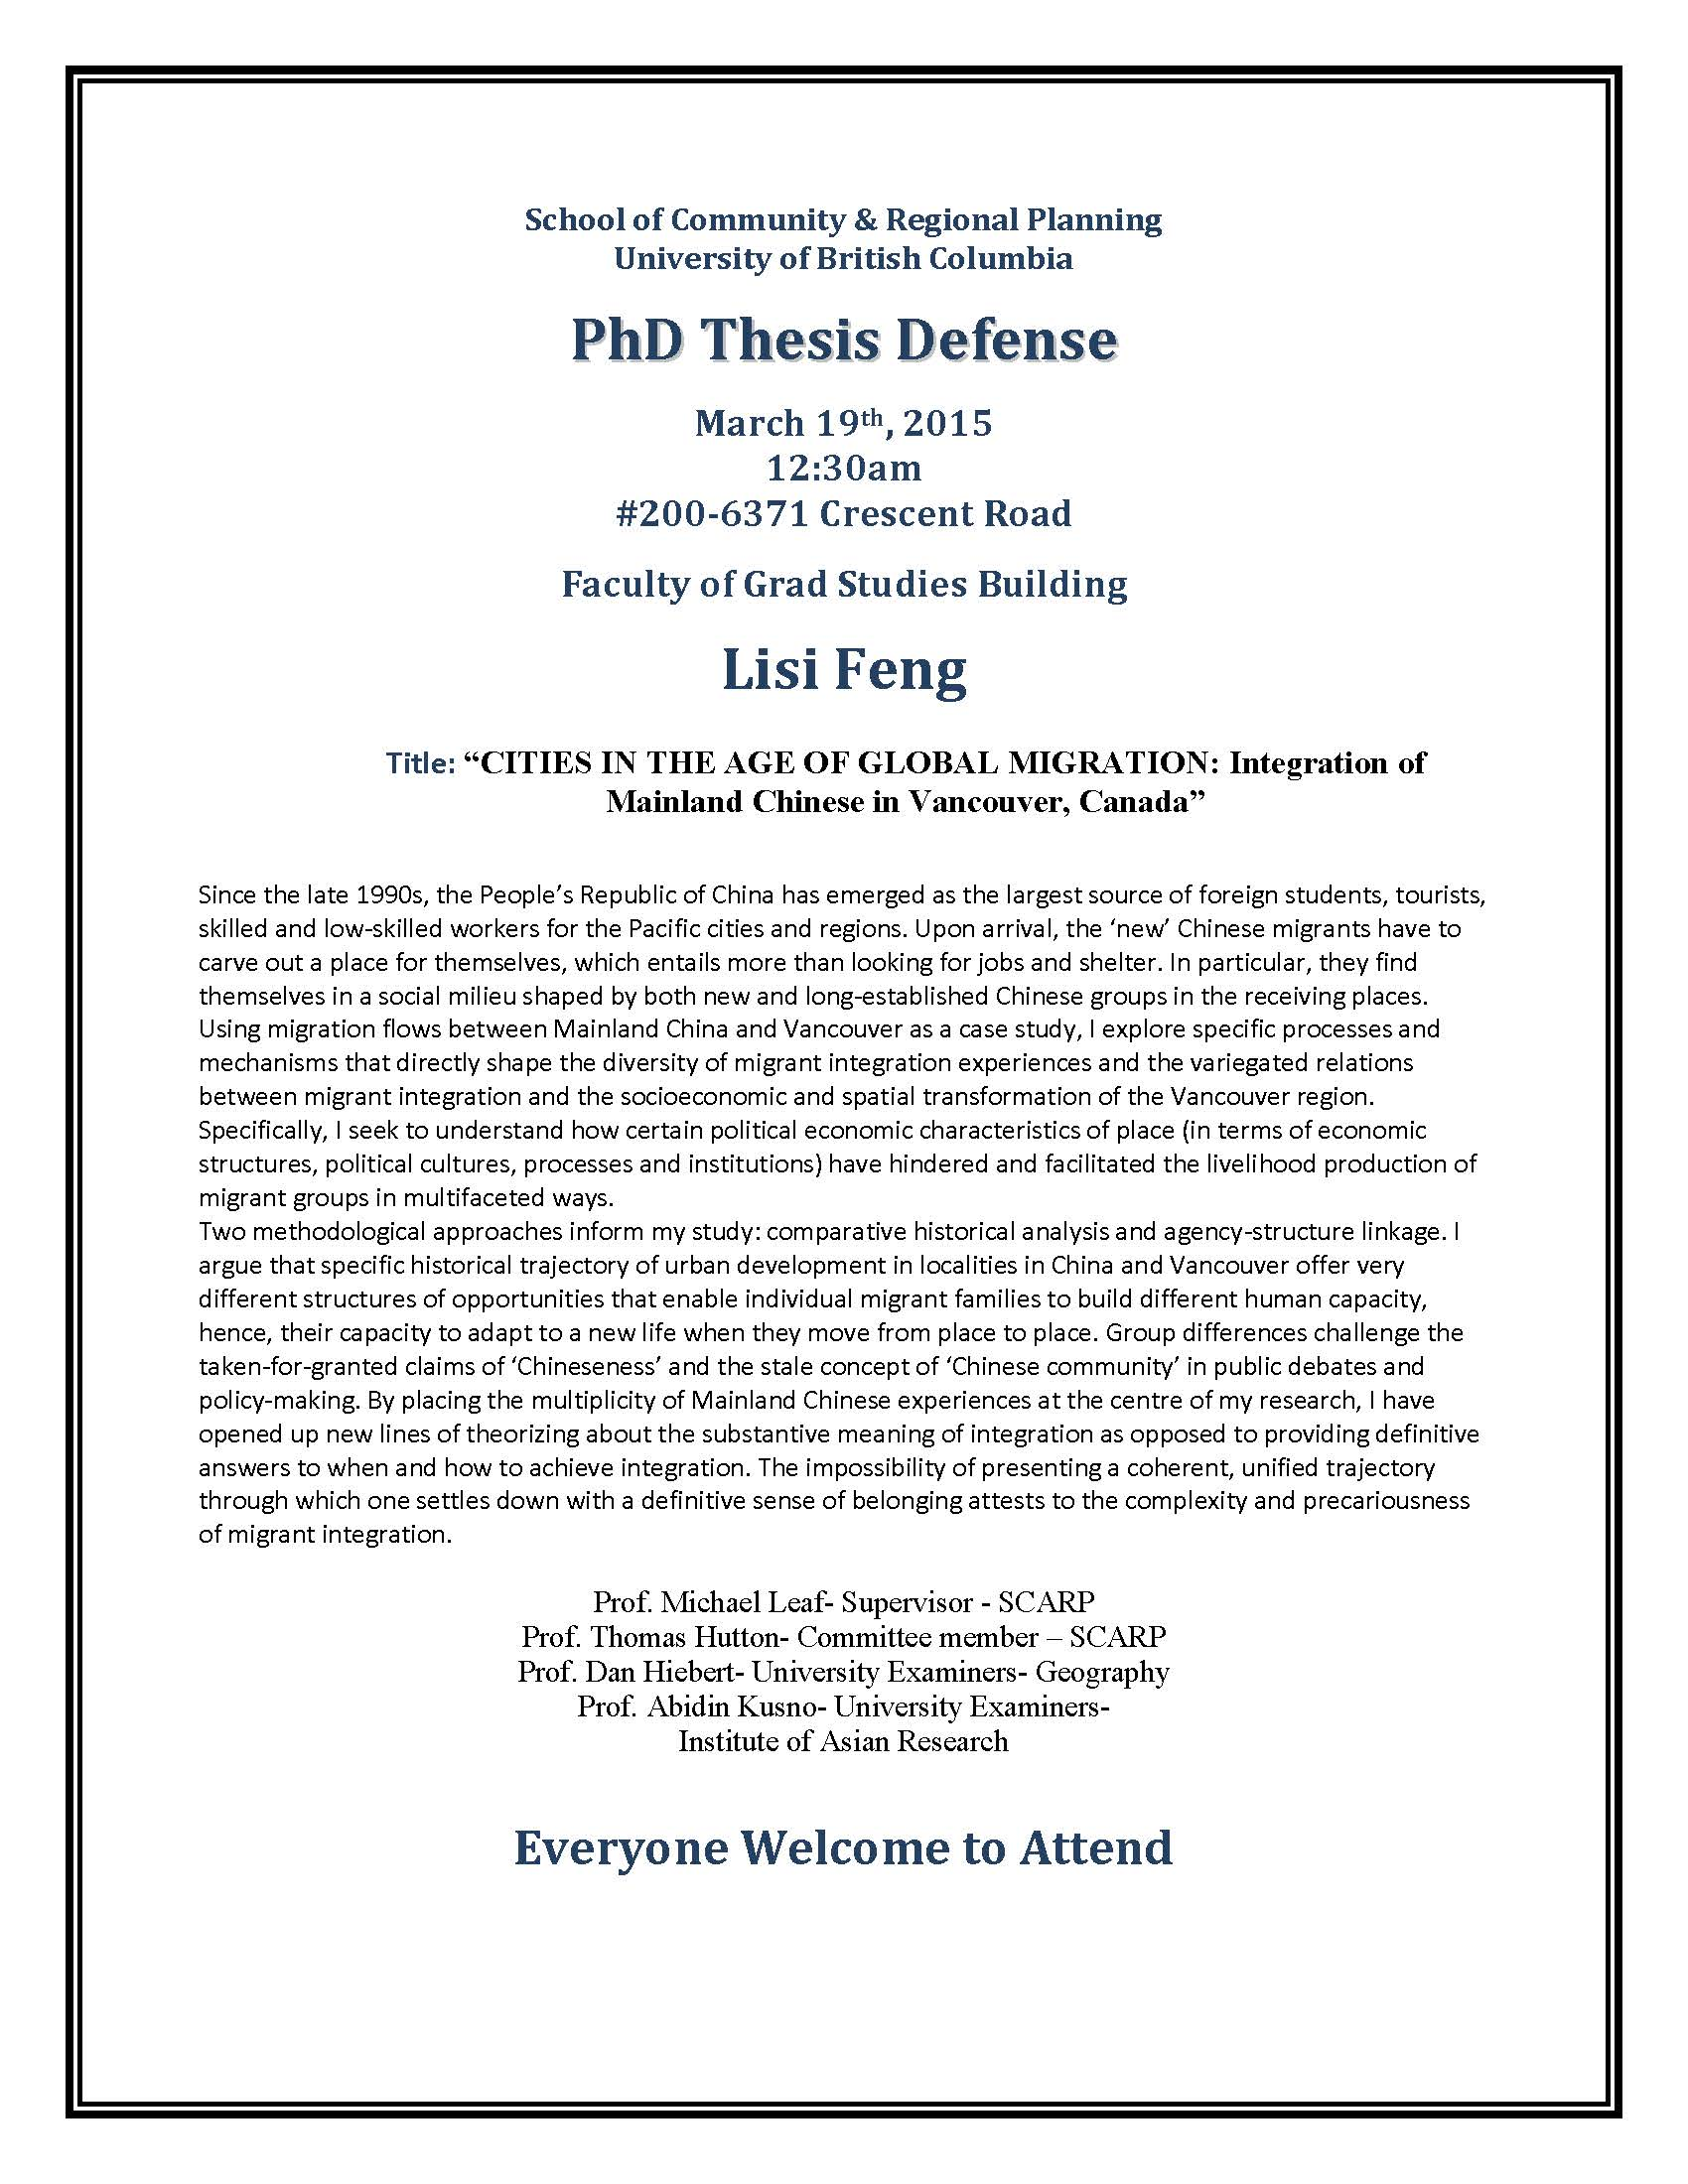 phd thesis defense presentation The perfect defense: farrelly_phd dissertation defense - duration: 43:16 masters defense presentation - duration.